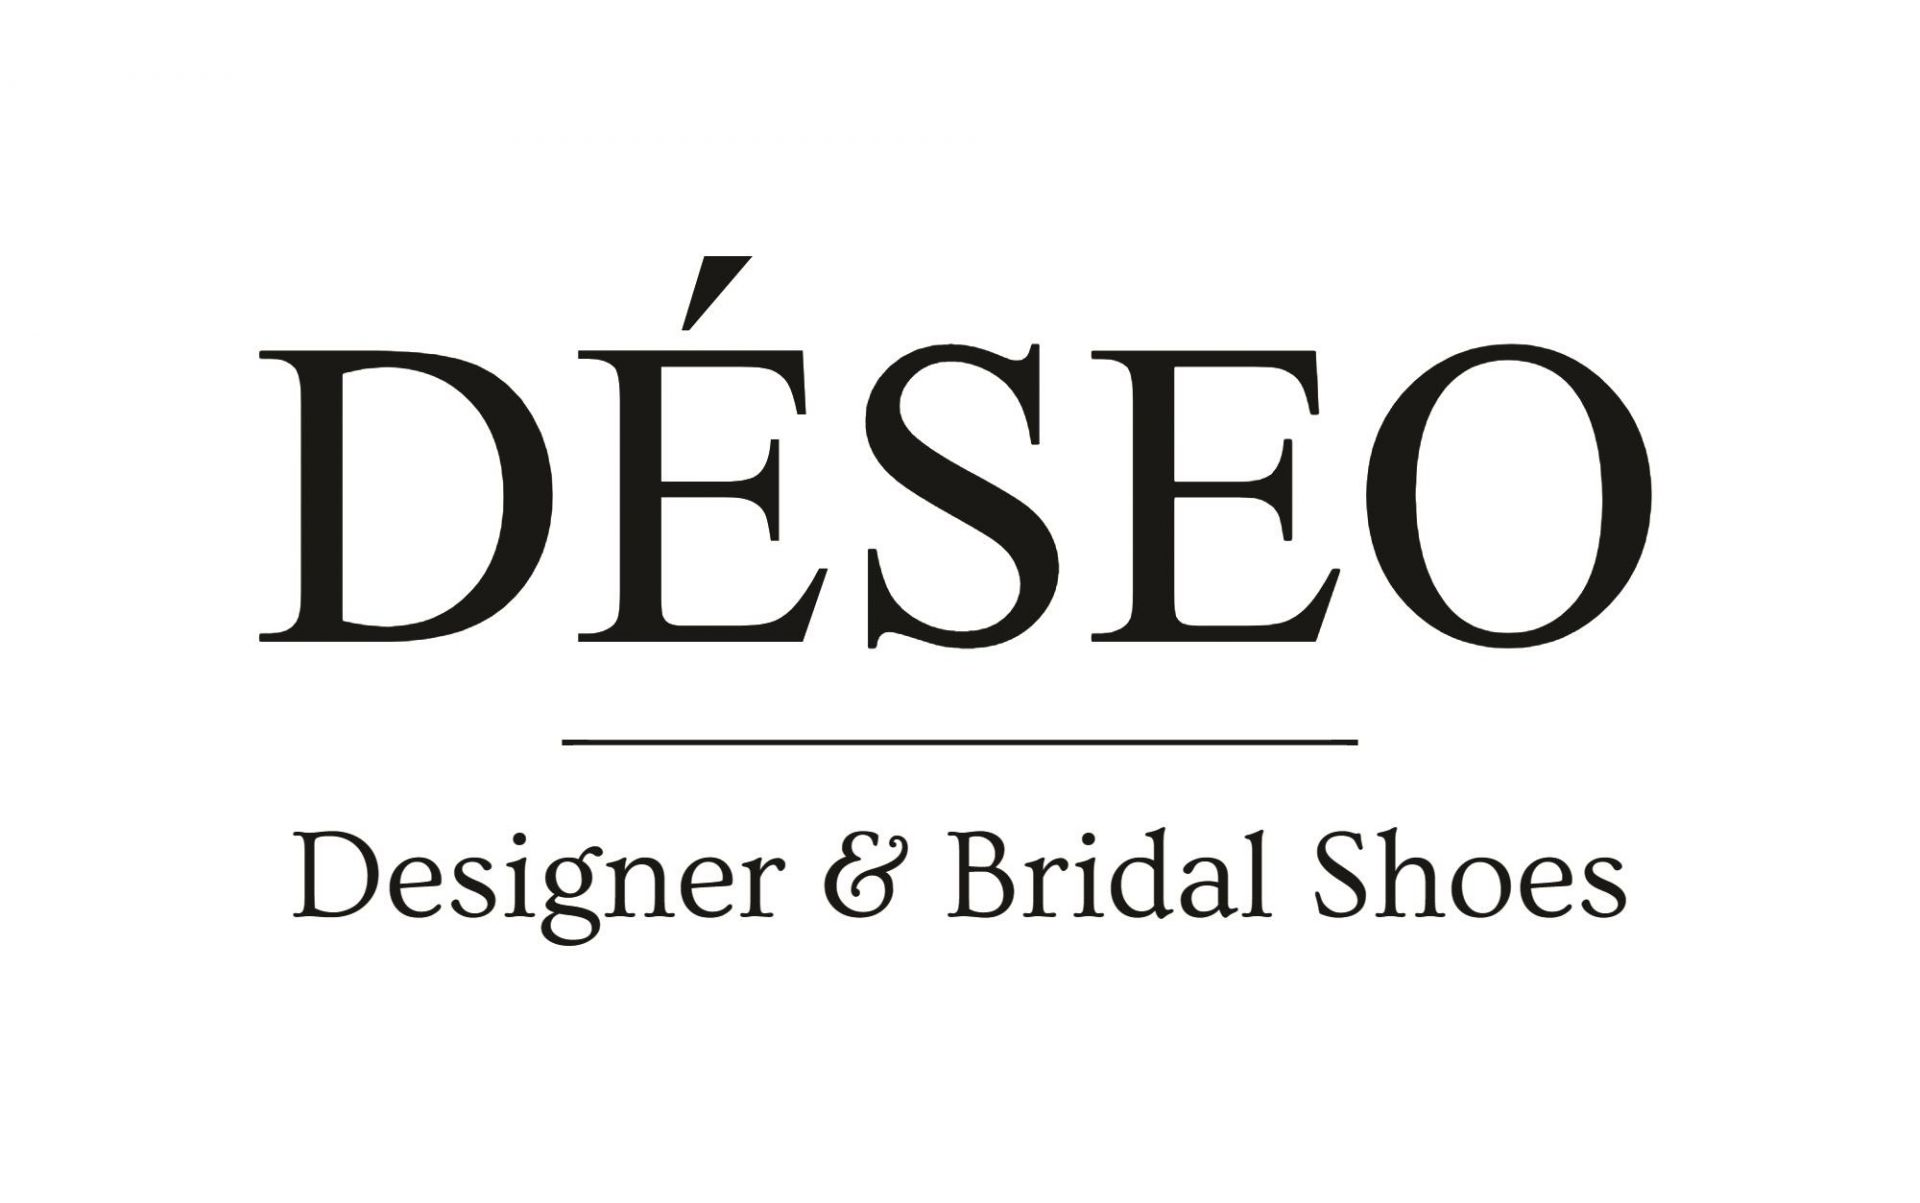 Leasehold Designer And Bridal Shoe Business – Crows Nest, Sydney Armadale, Melbo